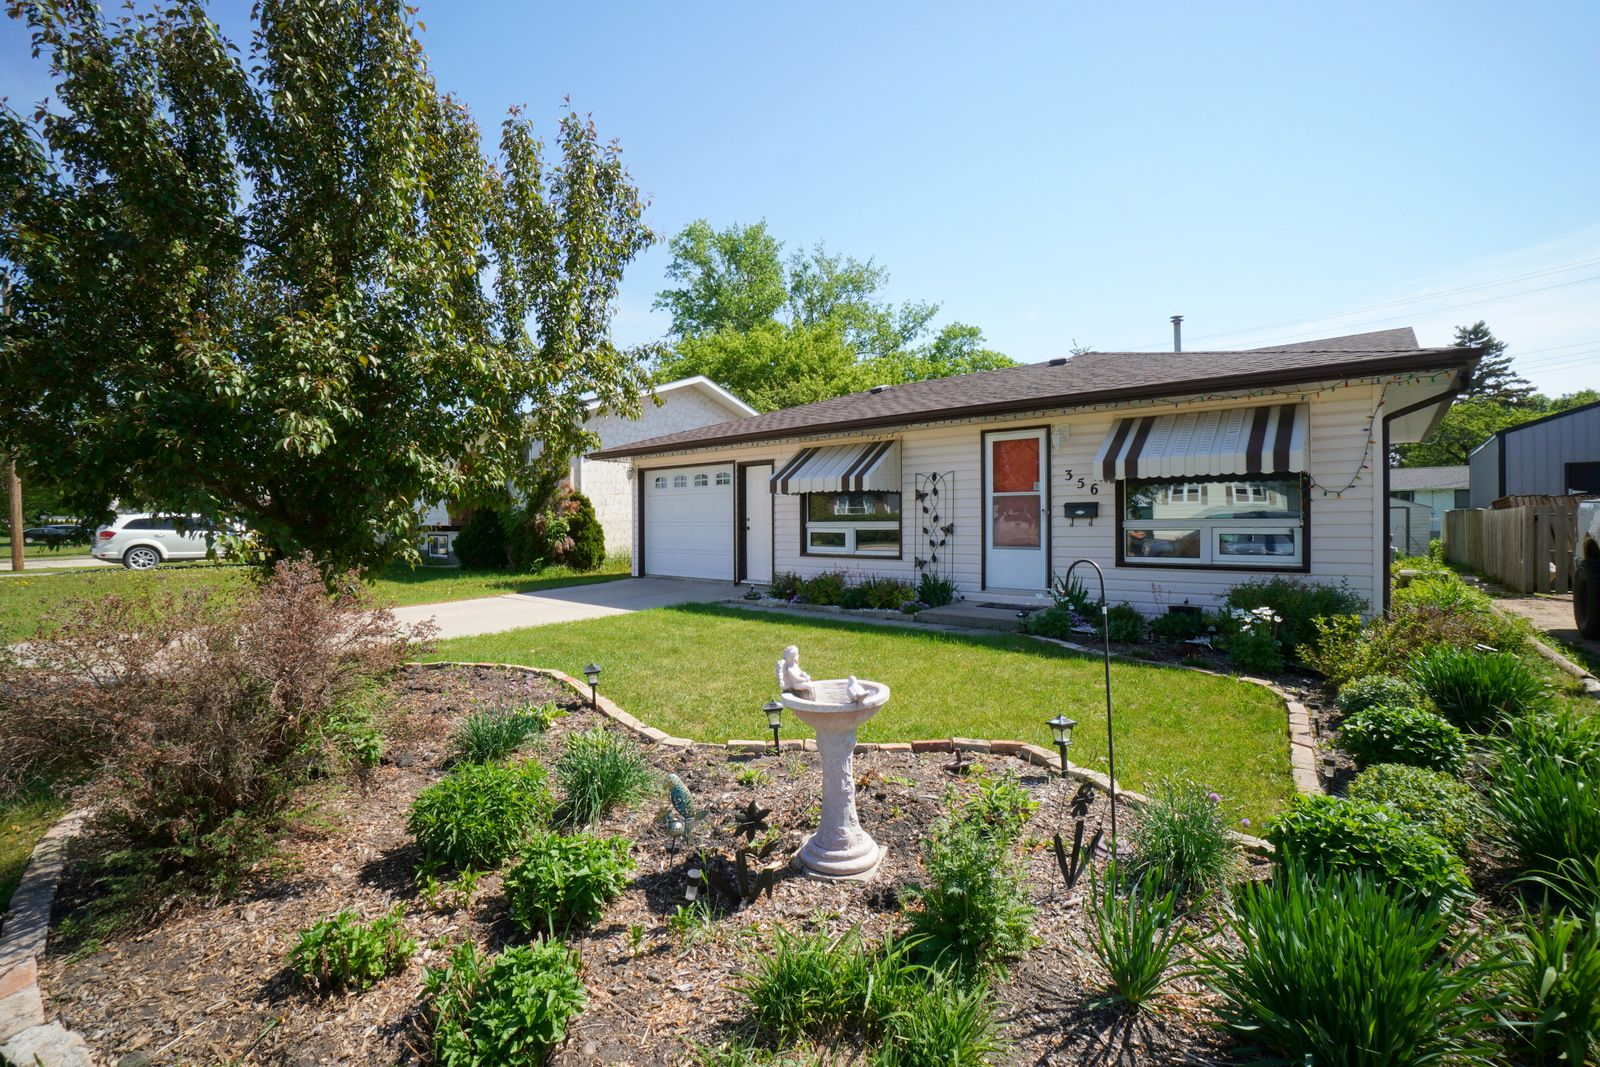 Main Photo: 356 10th Street NW in Portage la Prairie: House for sale : MLS®# 202114076